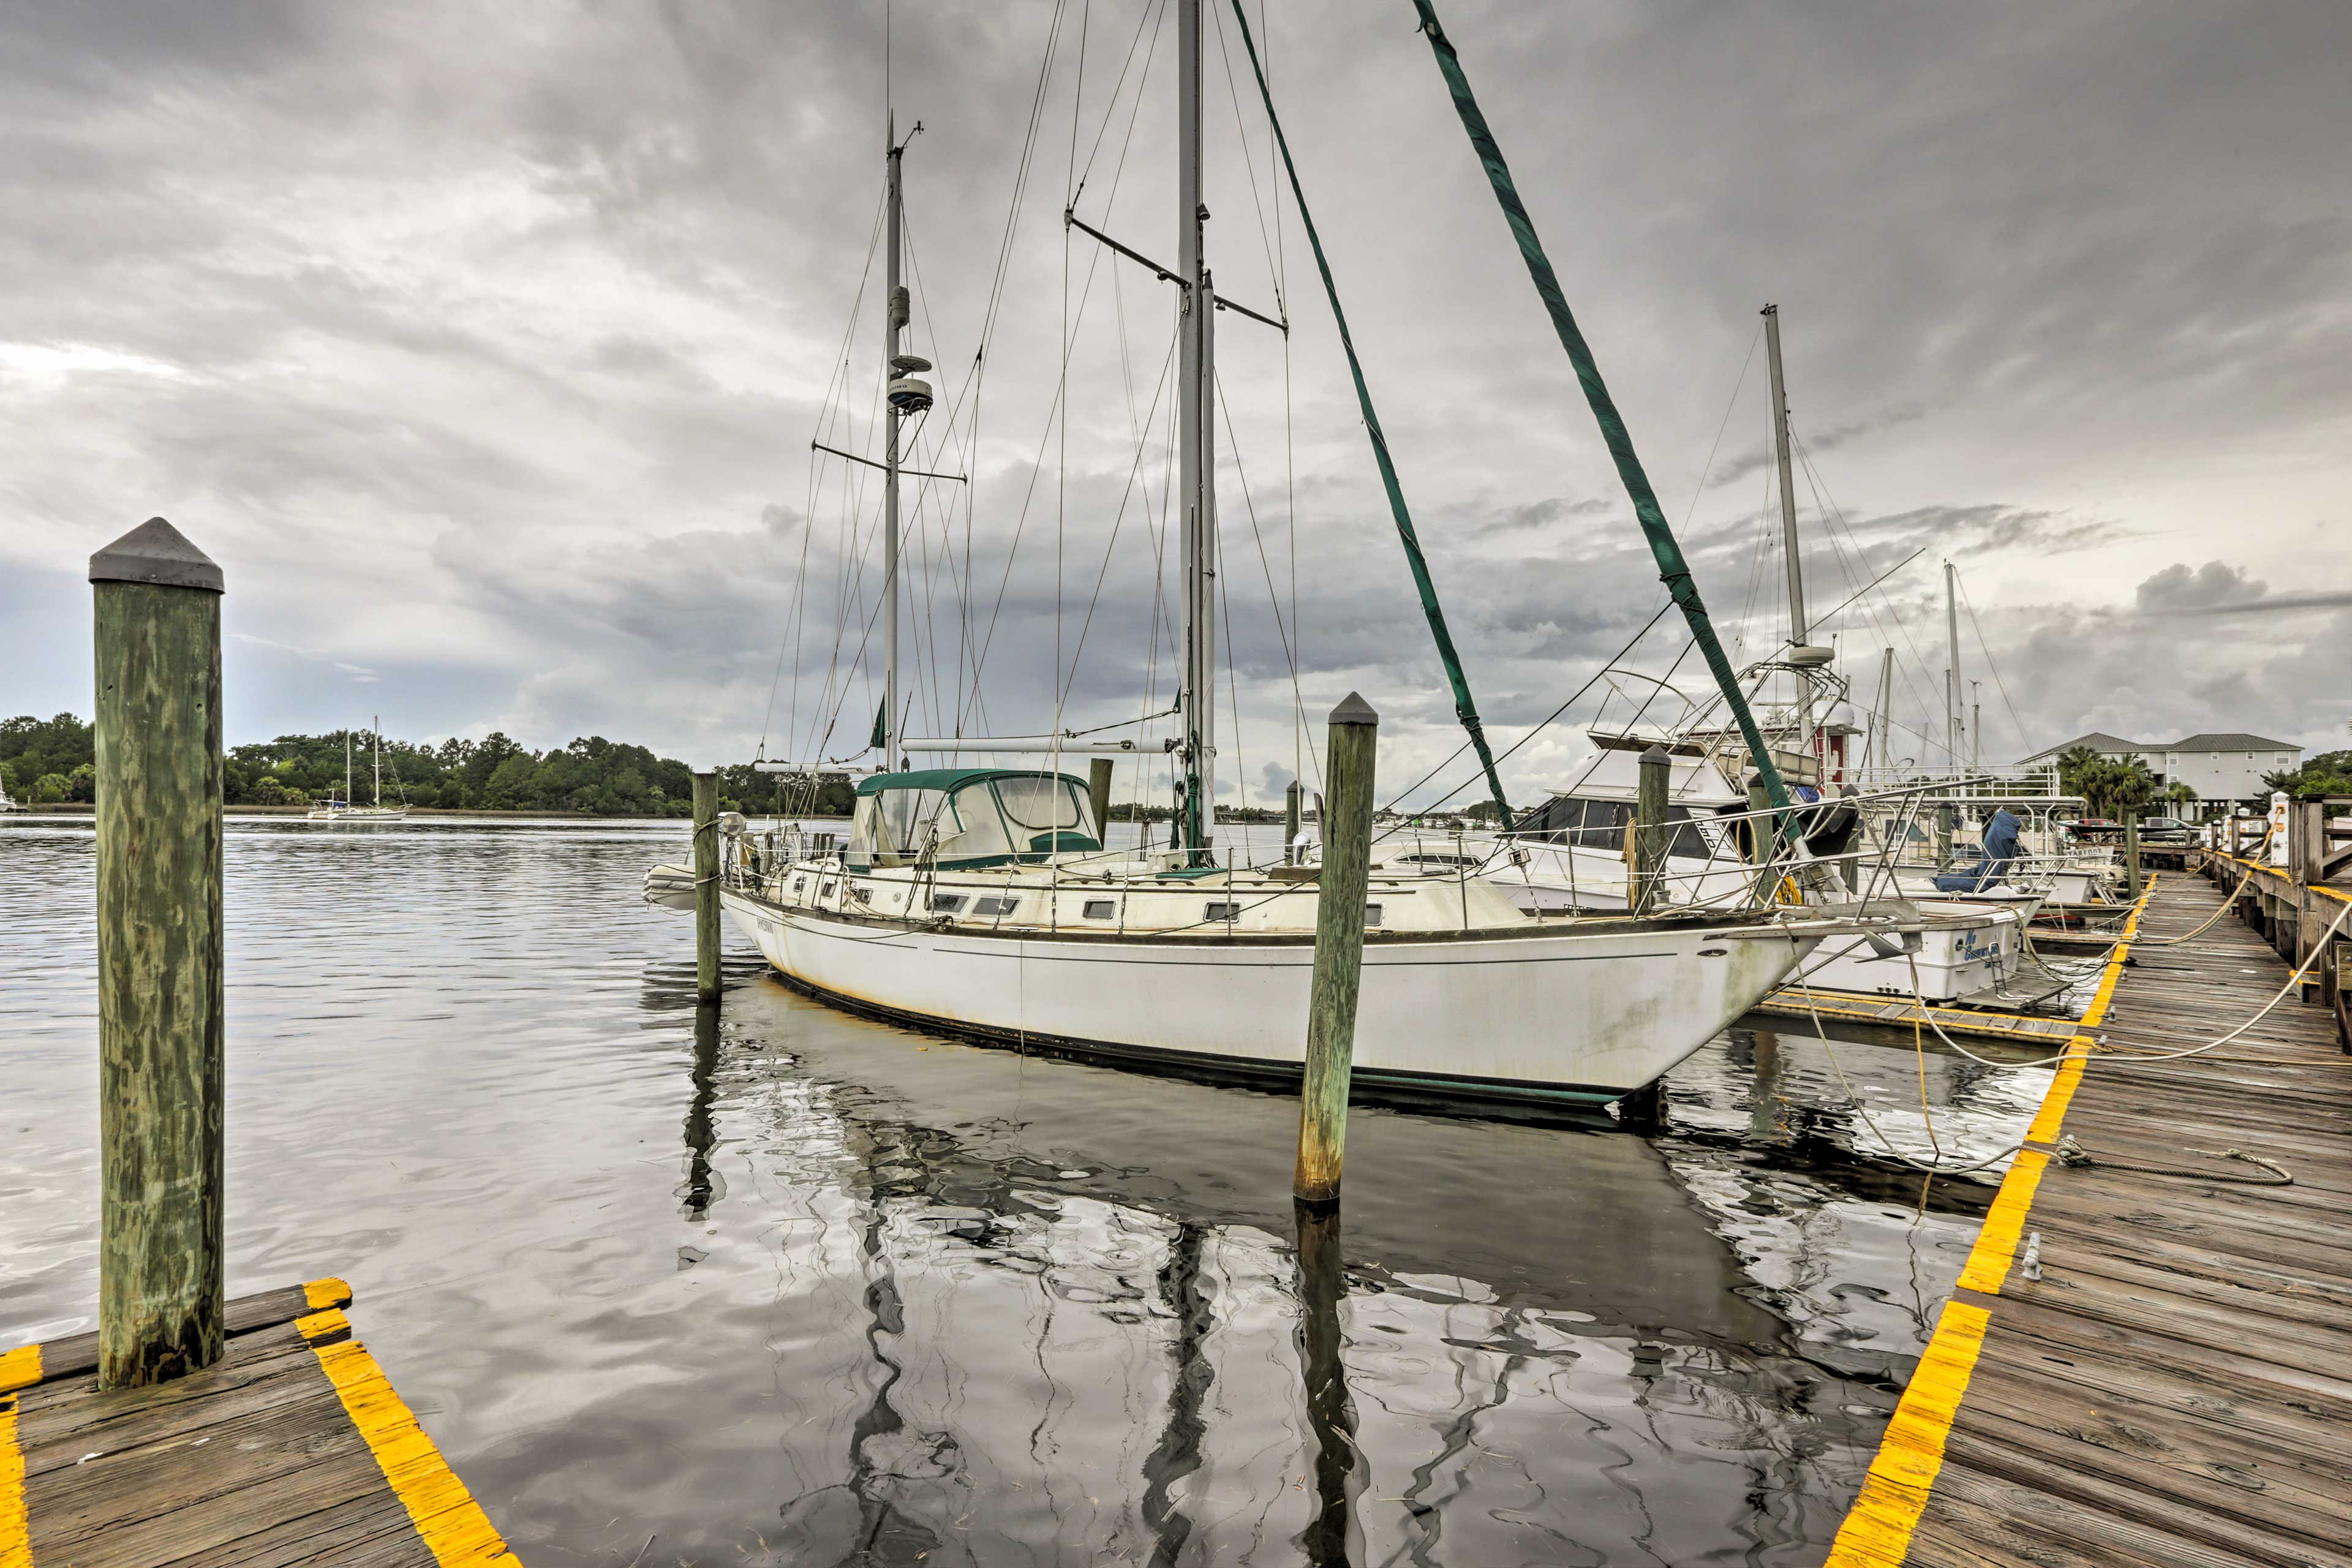 The marina is just a 7-minute walk away!